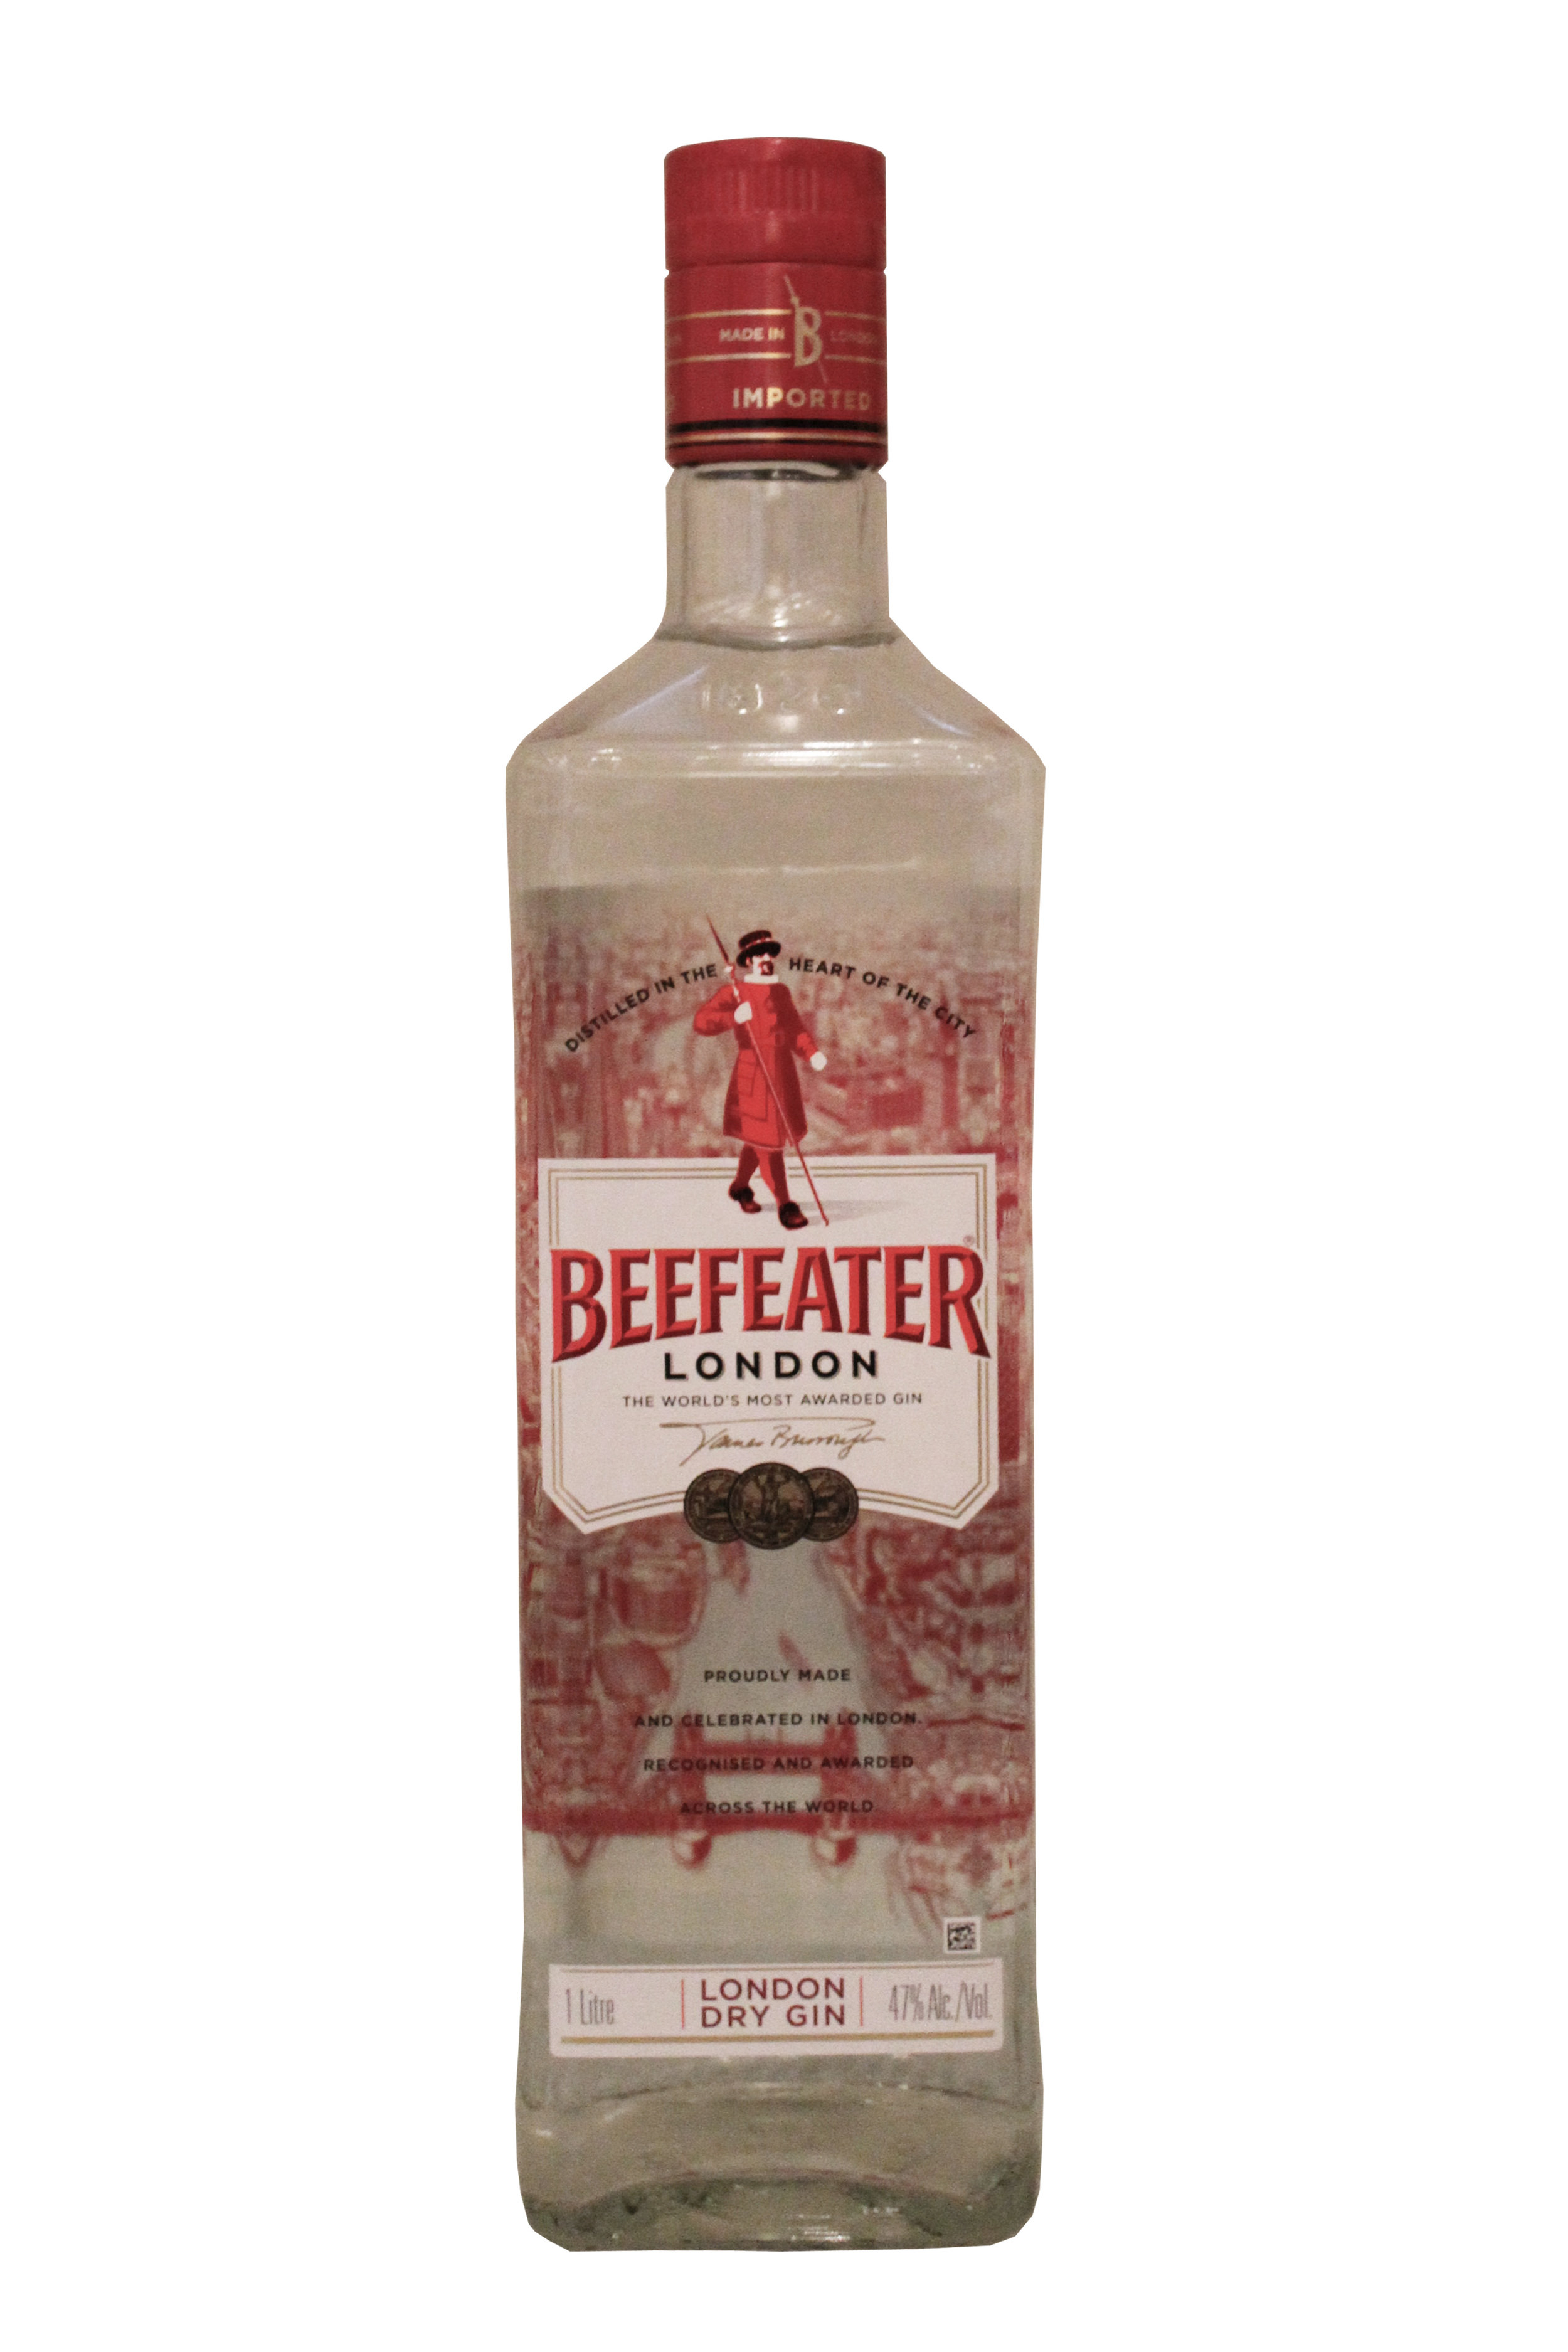 London Dry Gin  Beefeater,  England